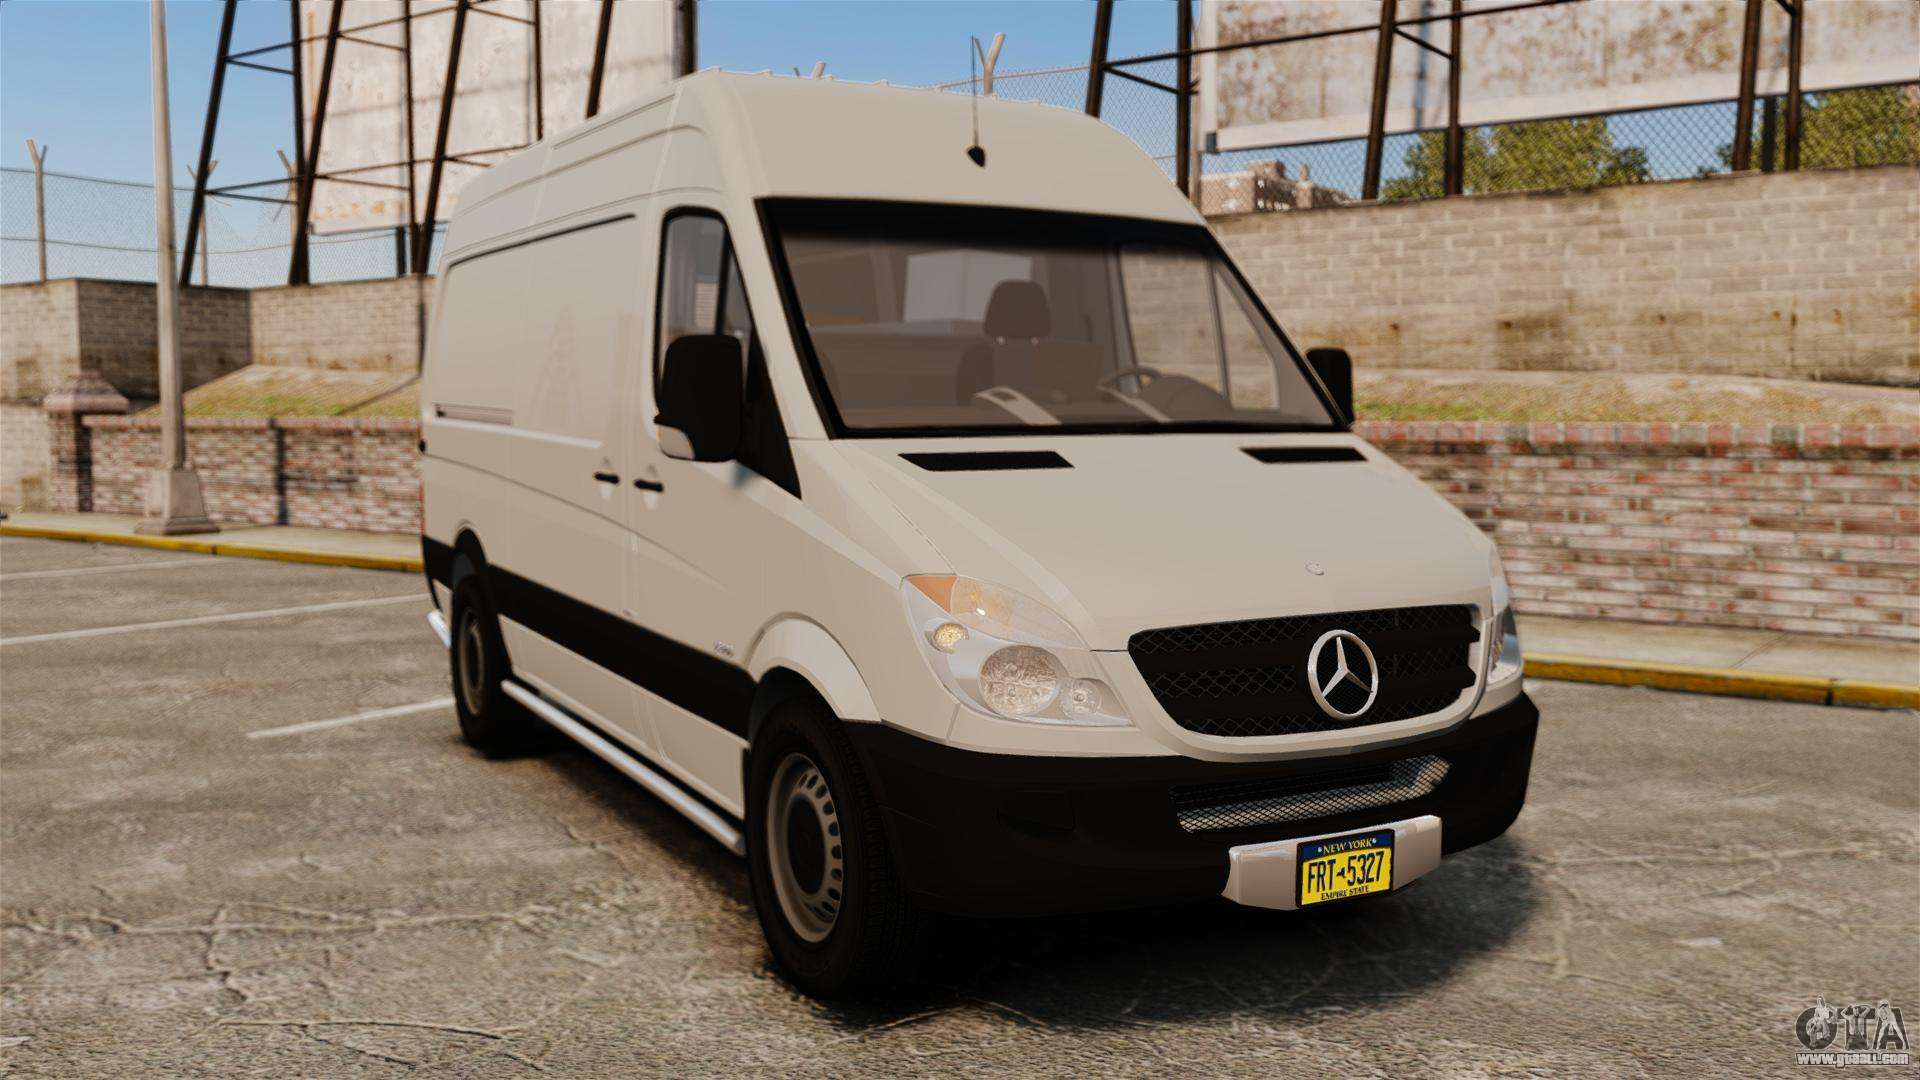 Mercedes benz sprinter 2500 delivery van 2011 for gta 4 for 2011 mercedes benz sprinter 2500